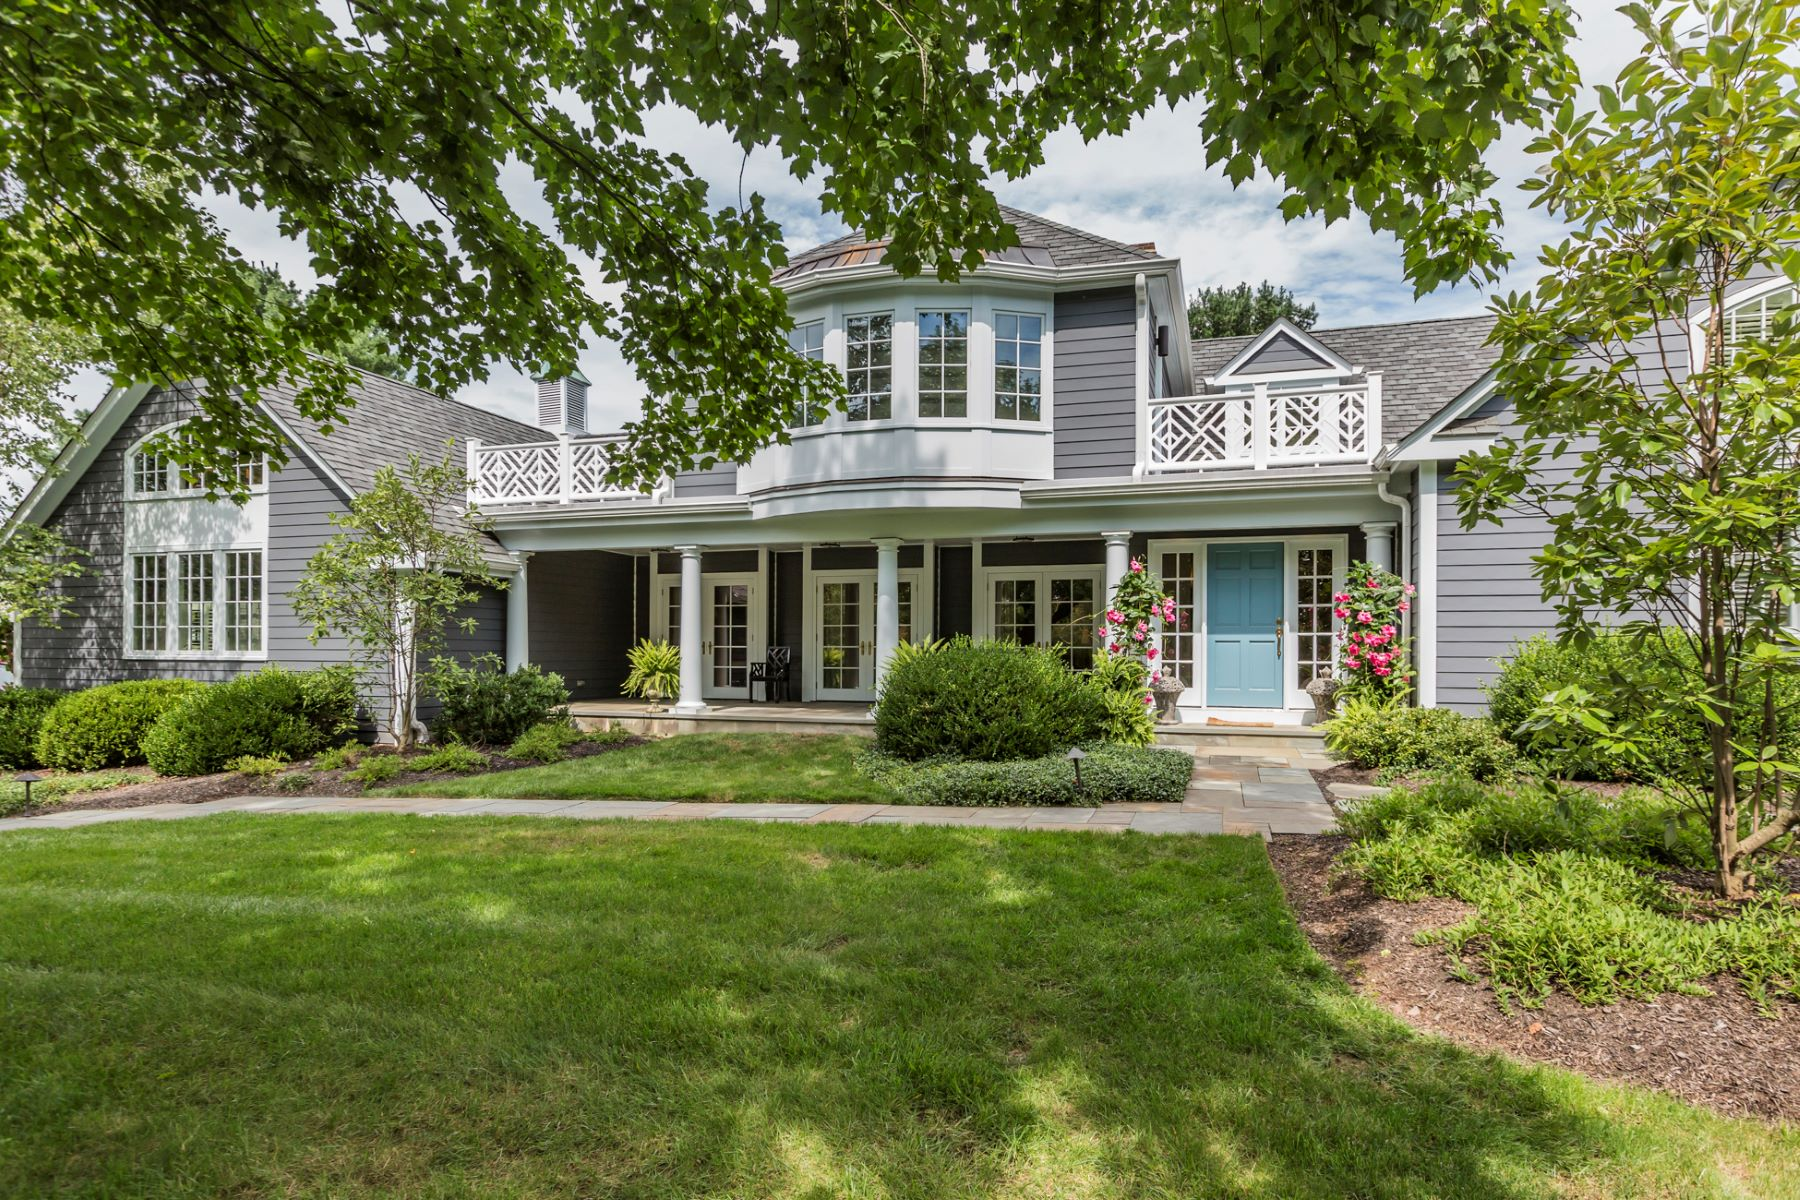 Maison unifamiliale pour l Vente à A Dream Come True In A Prized Golf Course Setting - Montgomery Township 102 Rolling Hill Road Skillman, New Jersey 08558 États-UnisDans/Autour: Montgomery Township